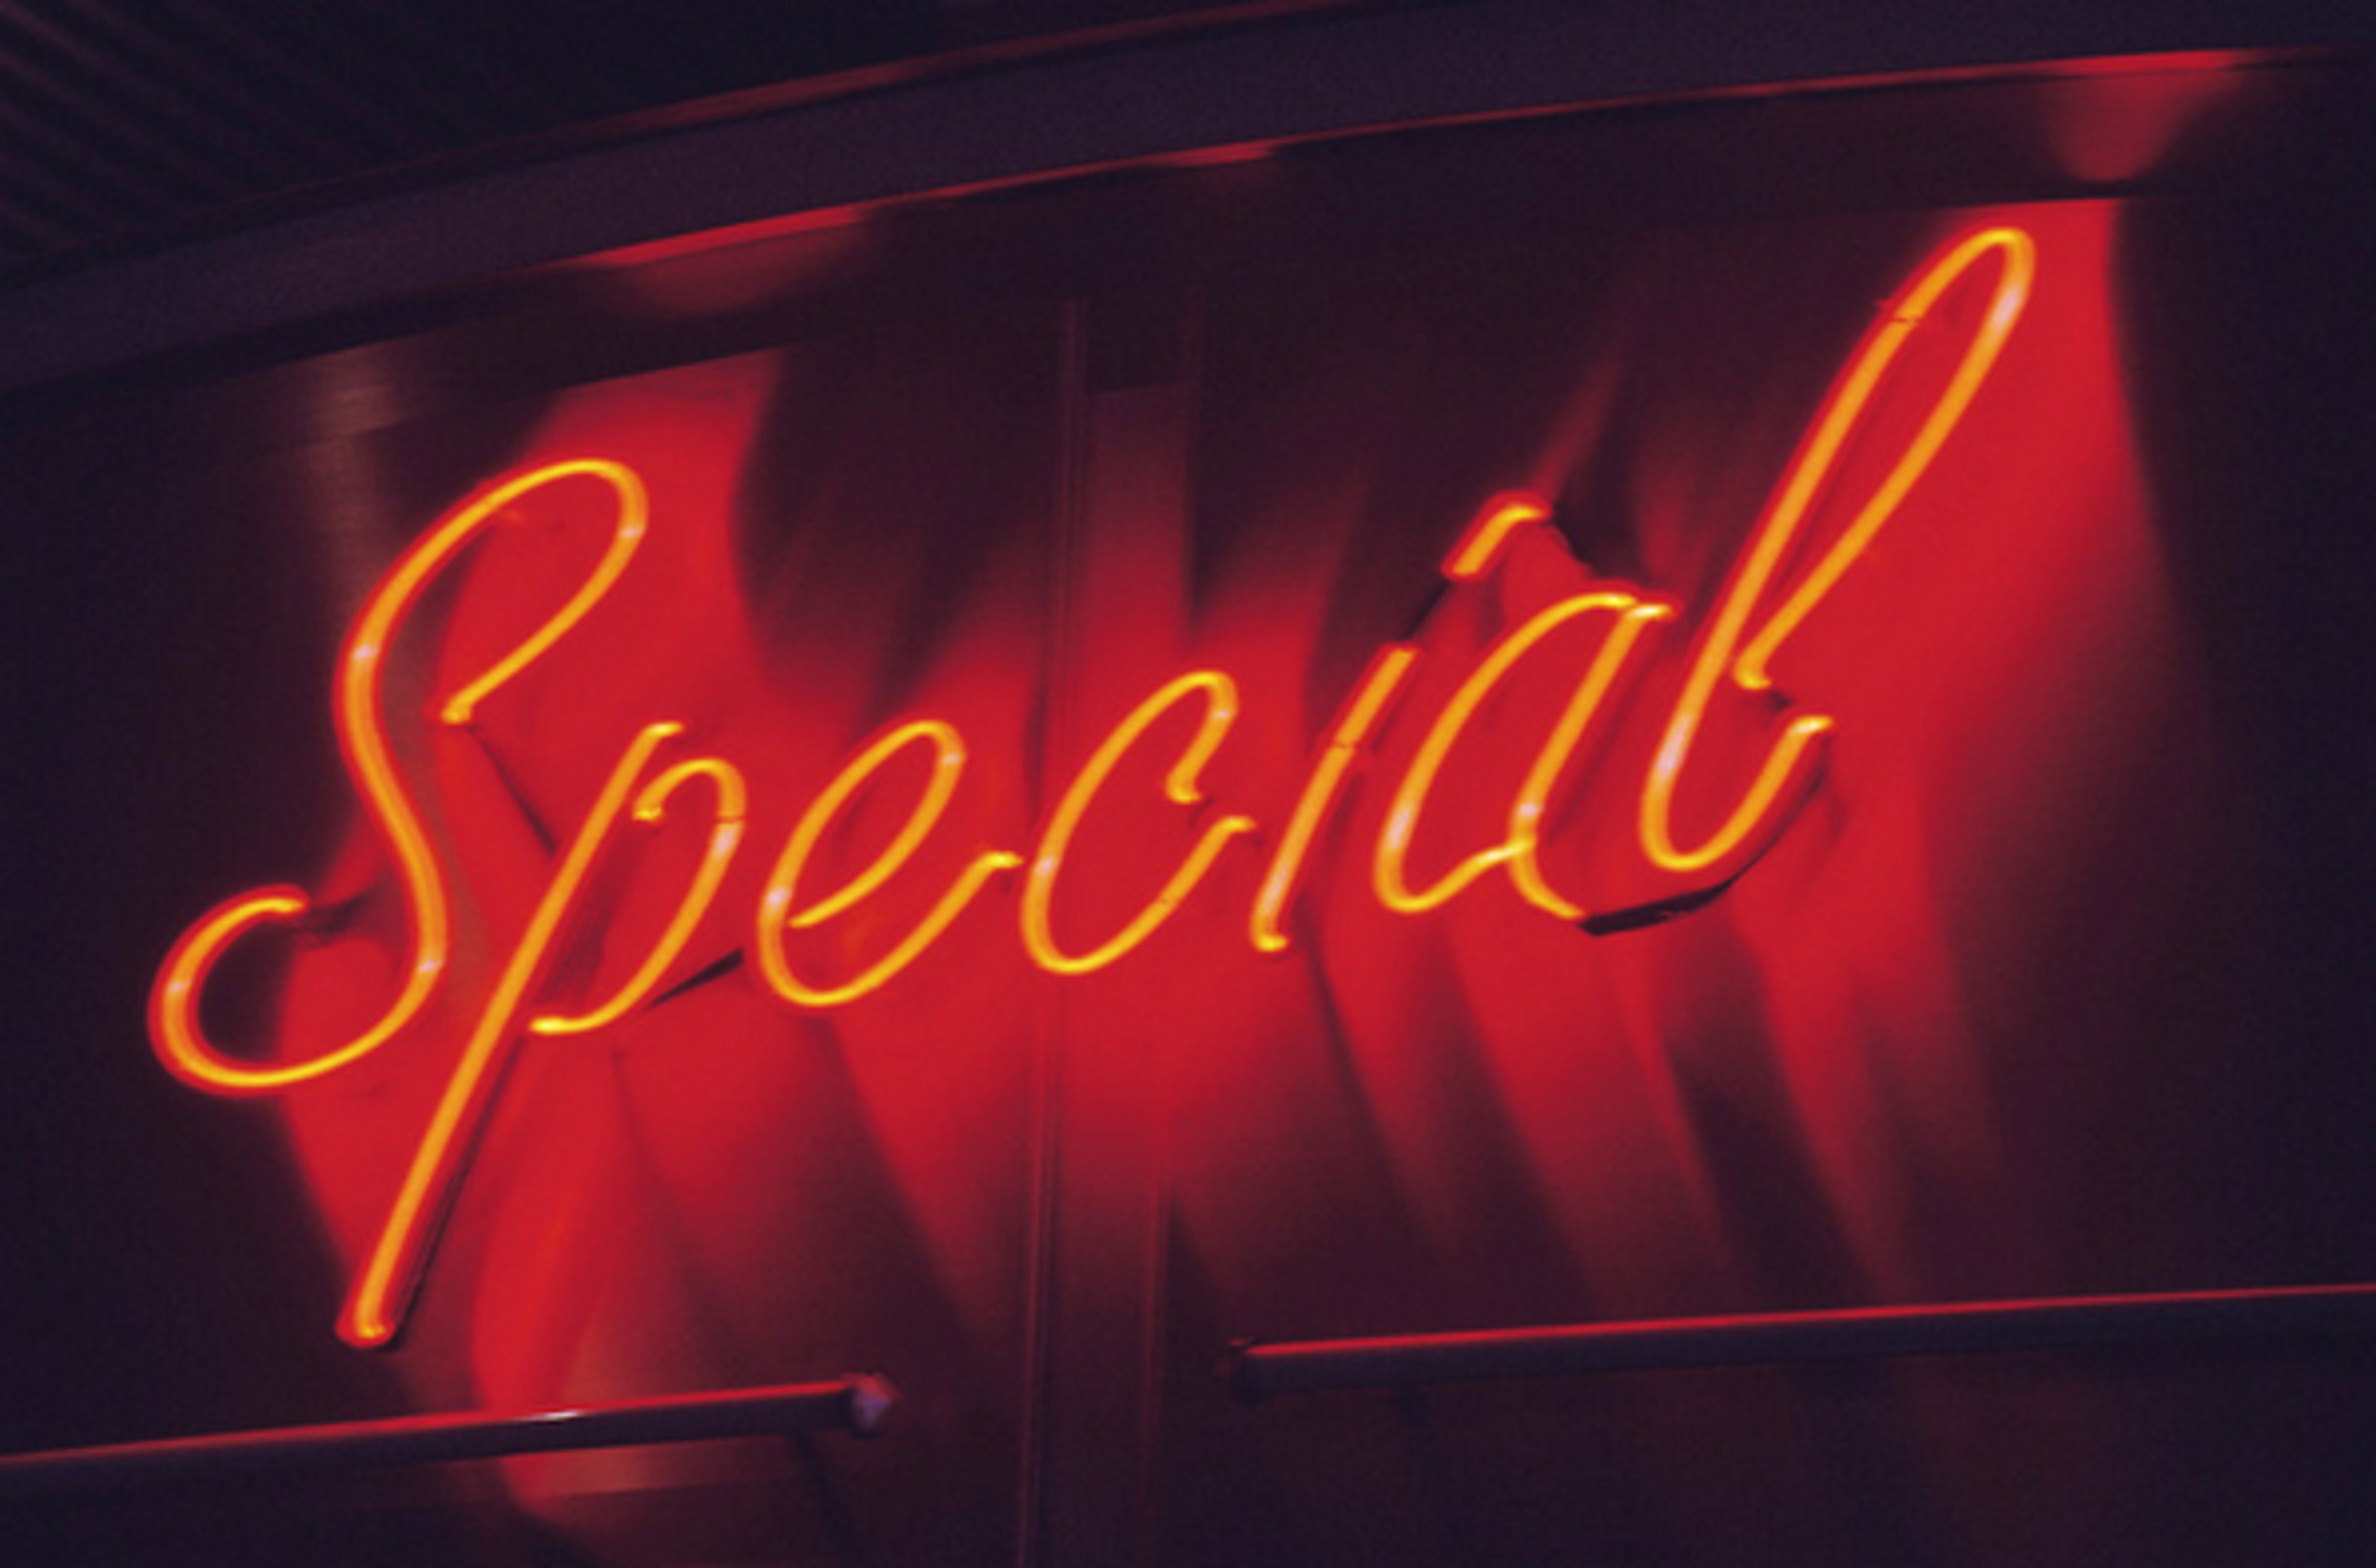 special (sign)